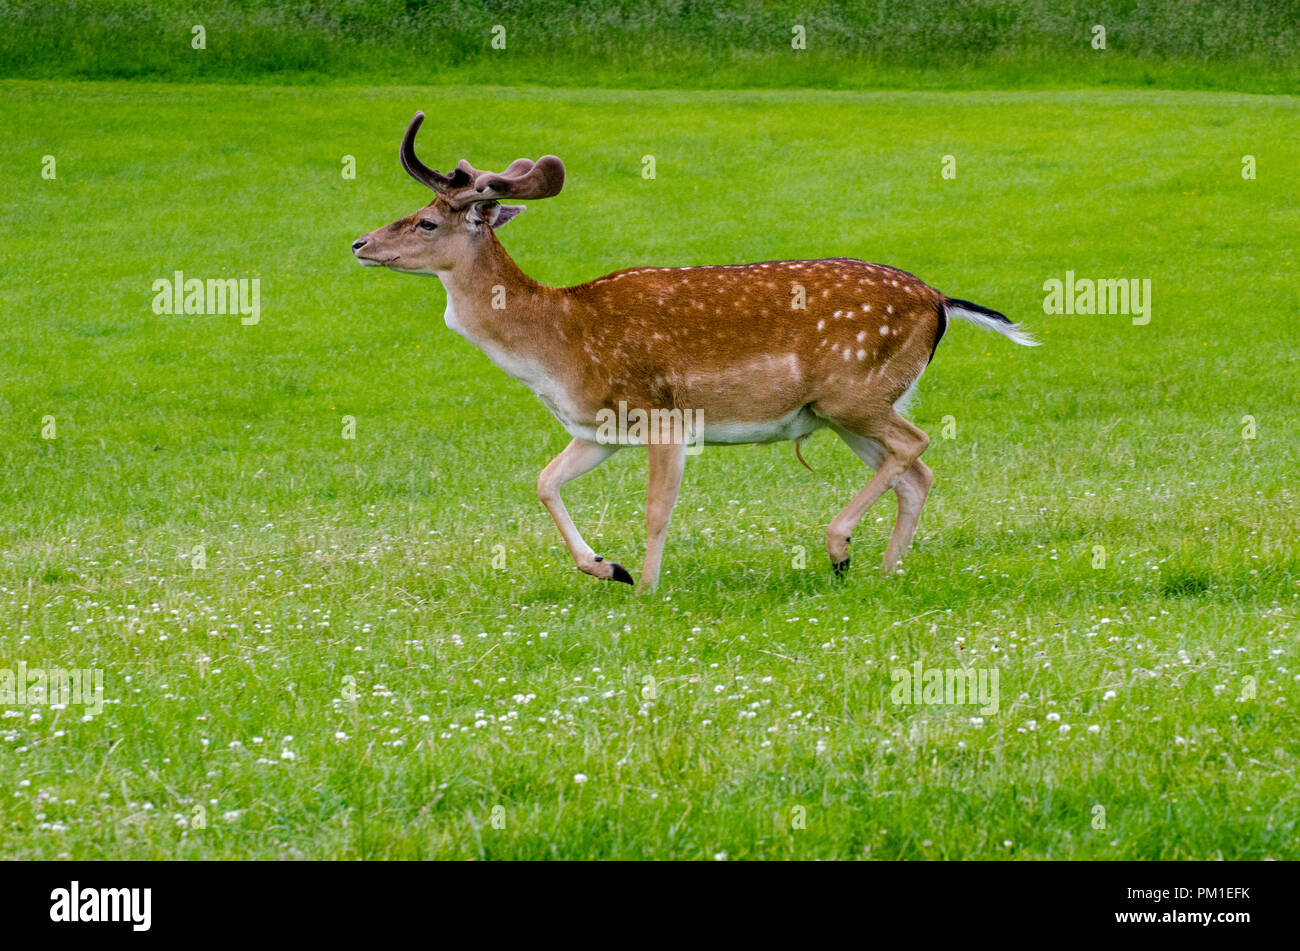 A side view of a fallow deer as it walks on the grass in the meadow - Stock Image